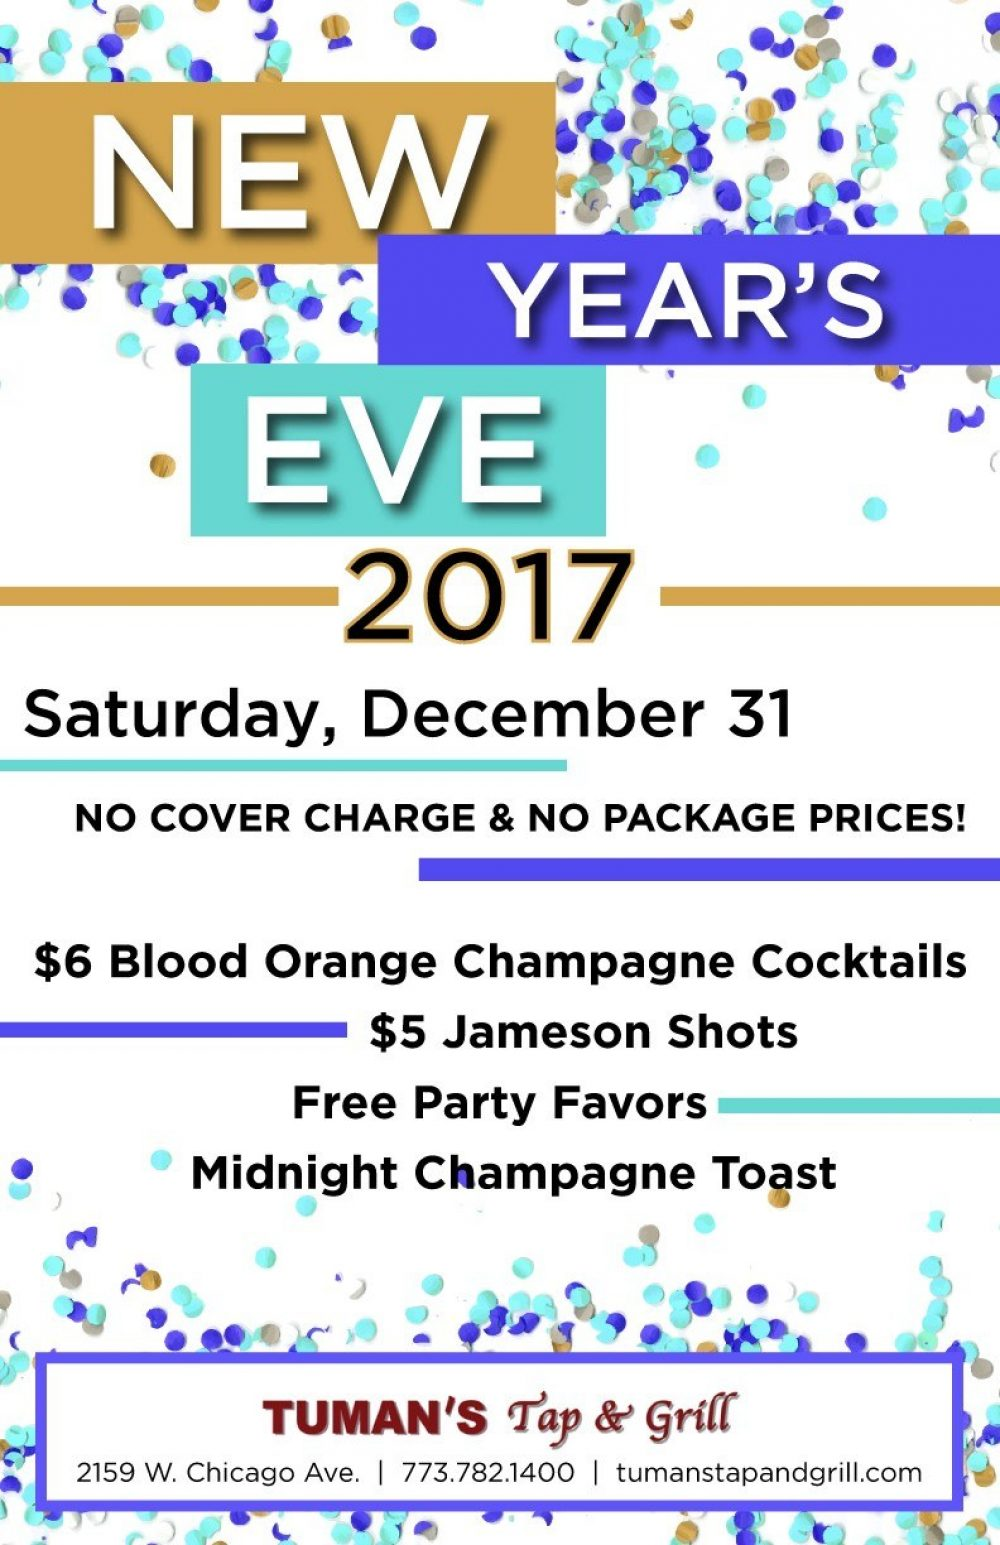 New Year's Eve at Tuman's Tap & Grill